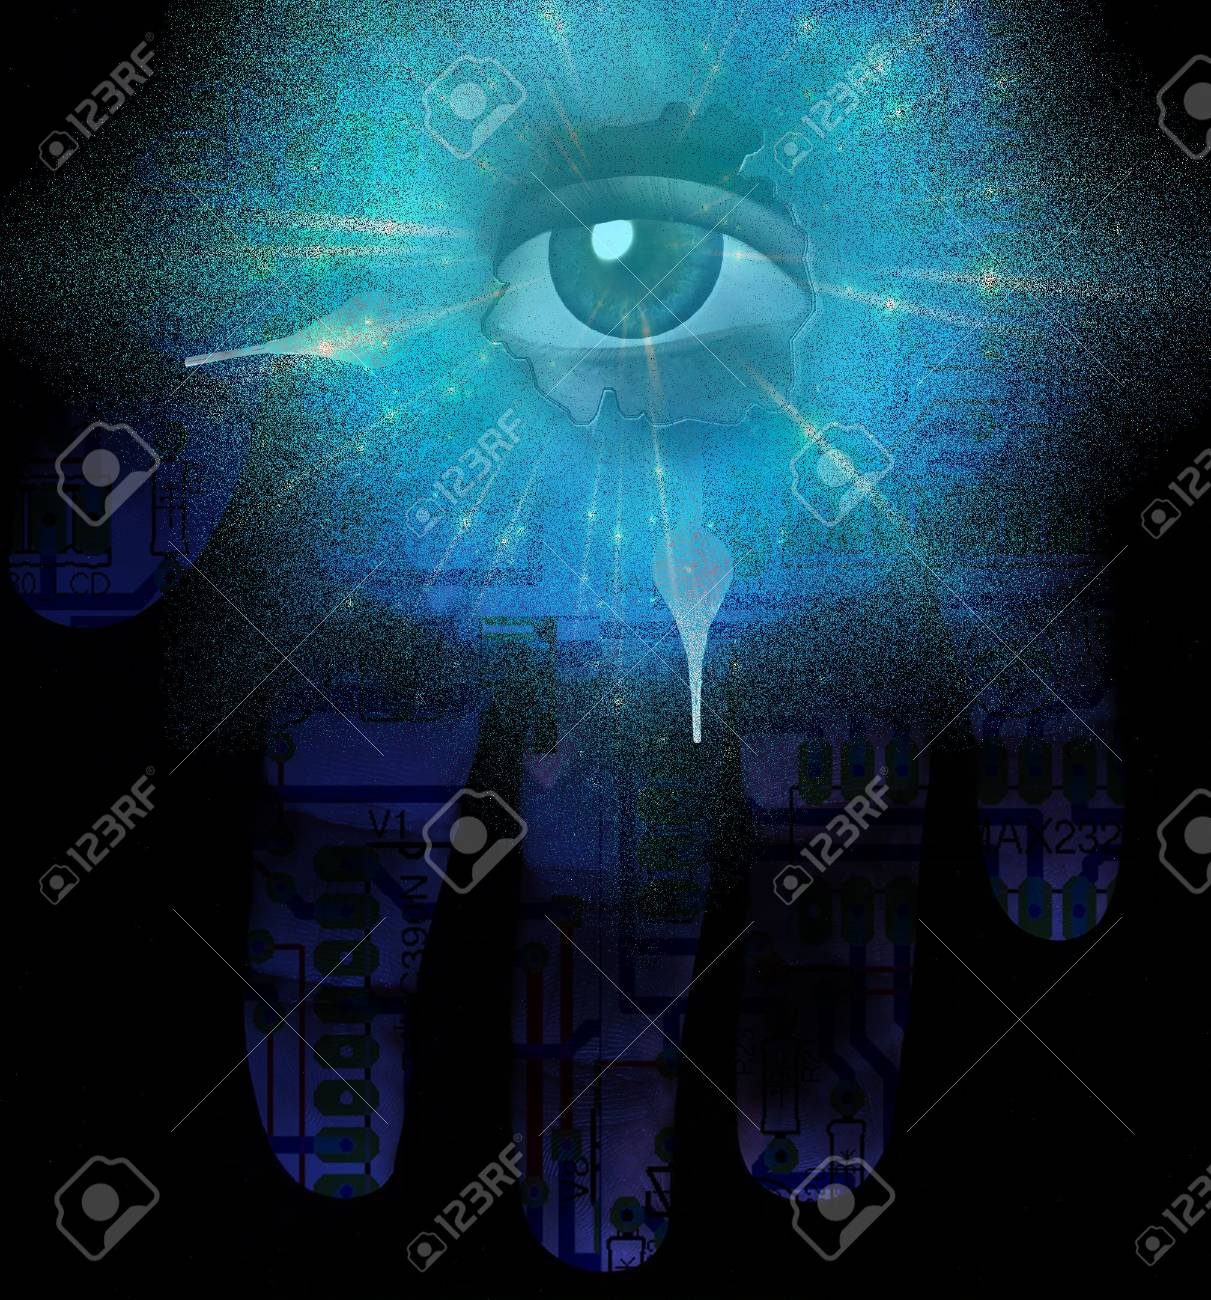 Sci fi abstract Stock Photo - 6525244